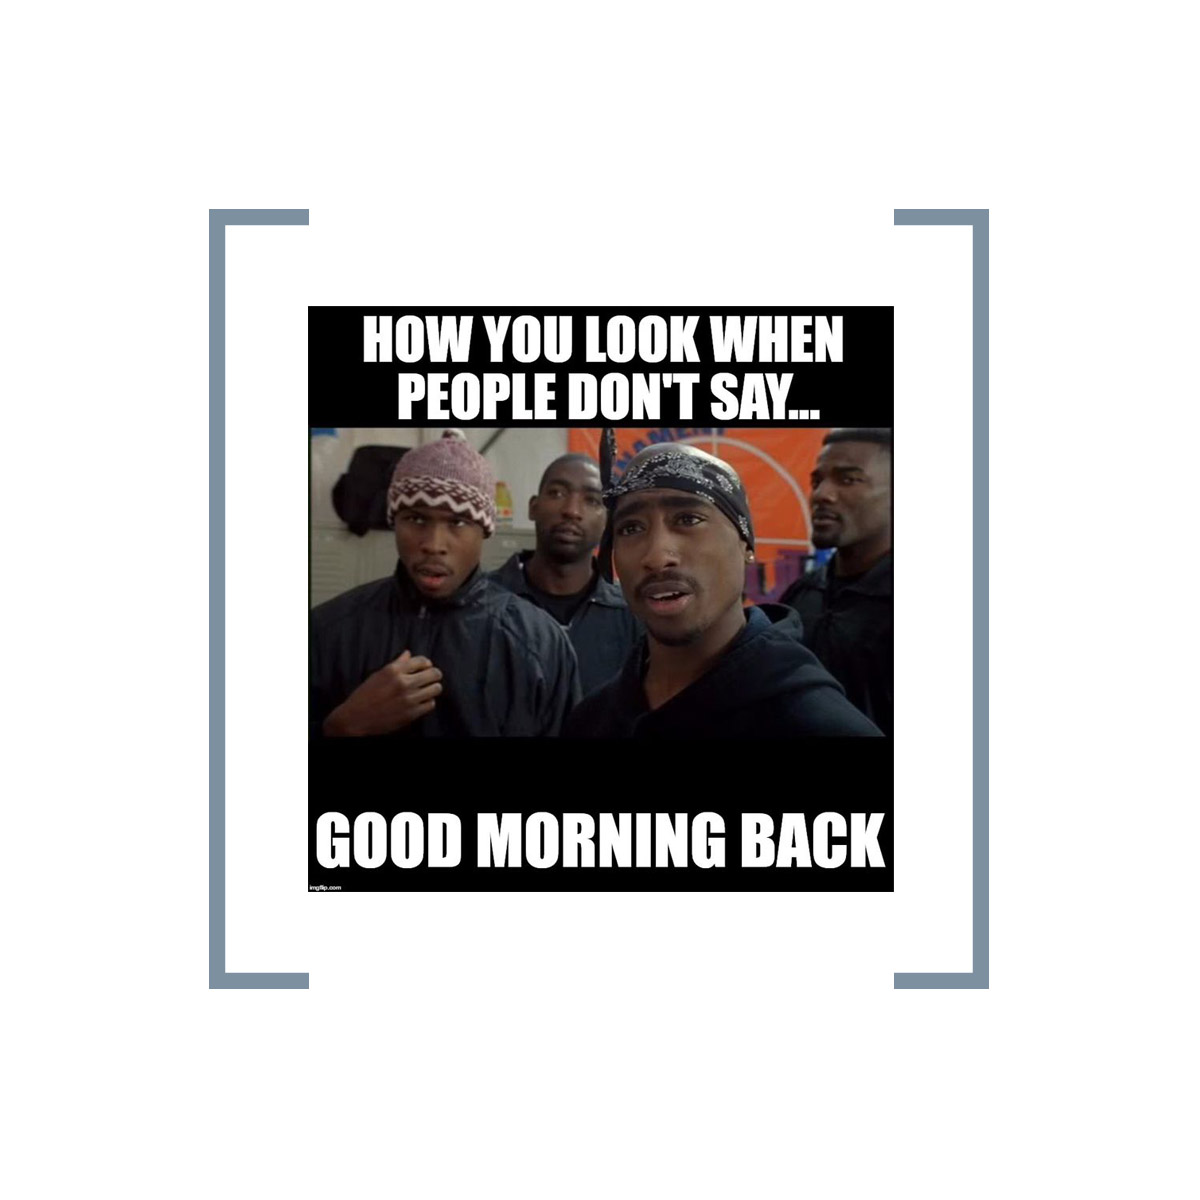 How you look when people don't say good morning back!  #blknbwn A Network That Connects!   #memes #memesapp #funny https://t.co/FI4Wj8DTyC